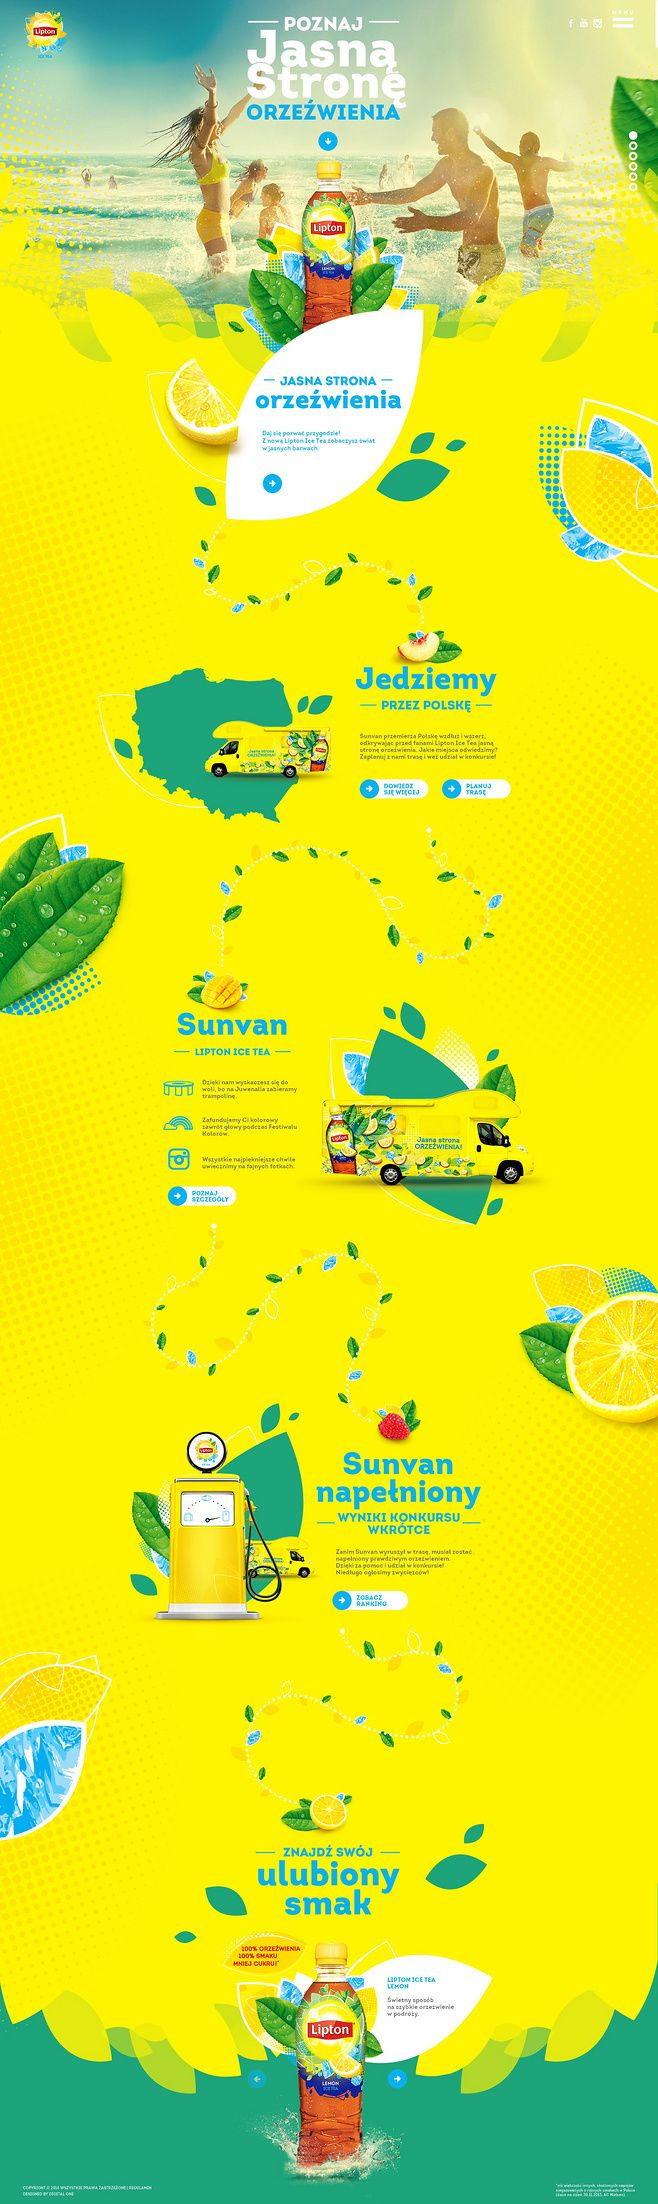 Unique Web Design, Lipton via @rednaxela75 #WebDesign #Design